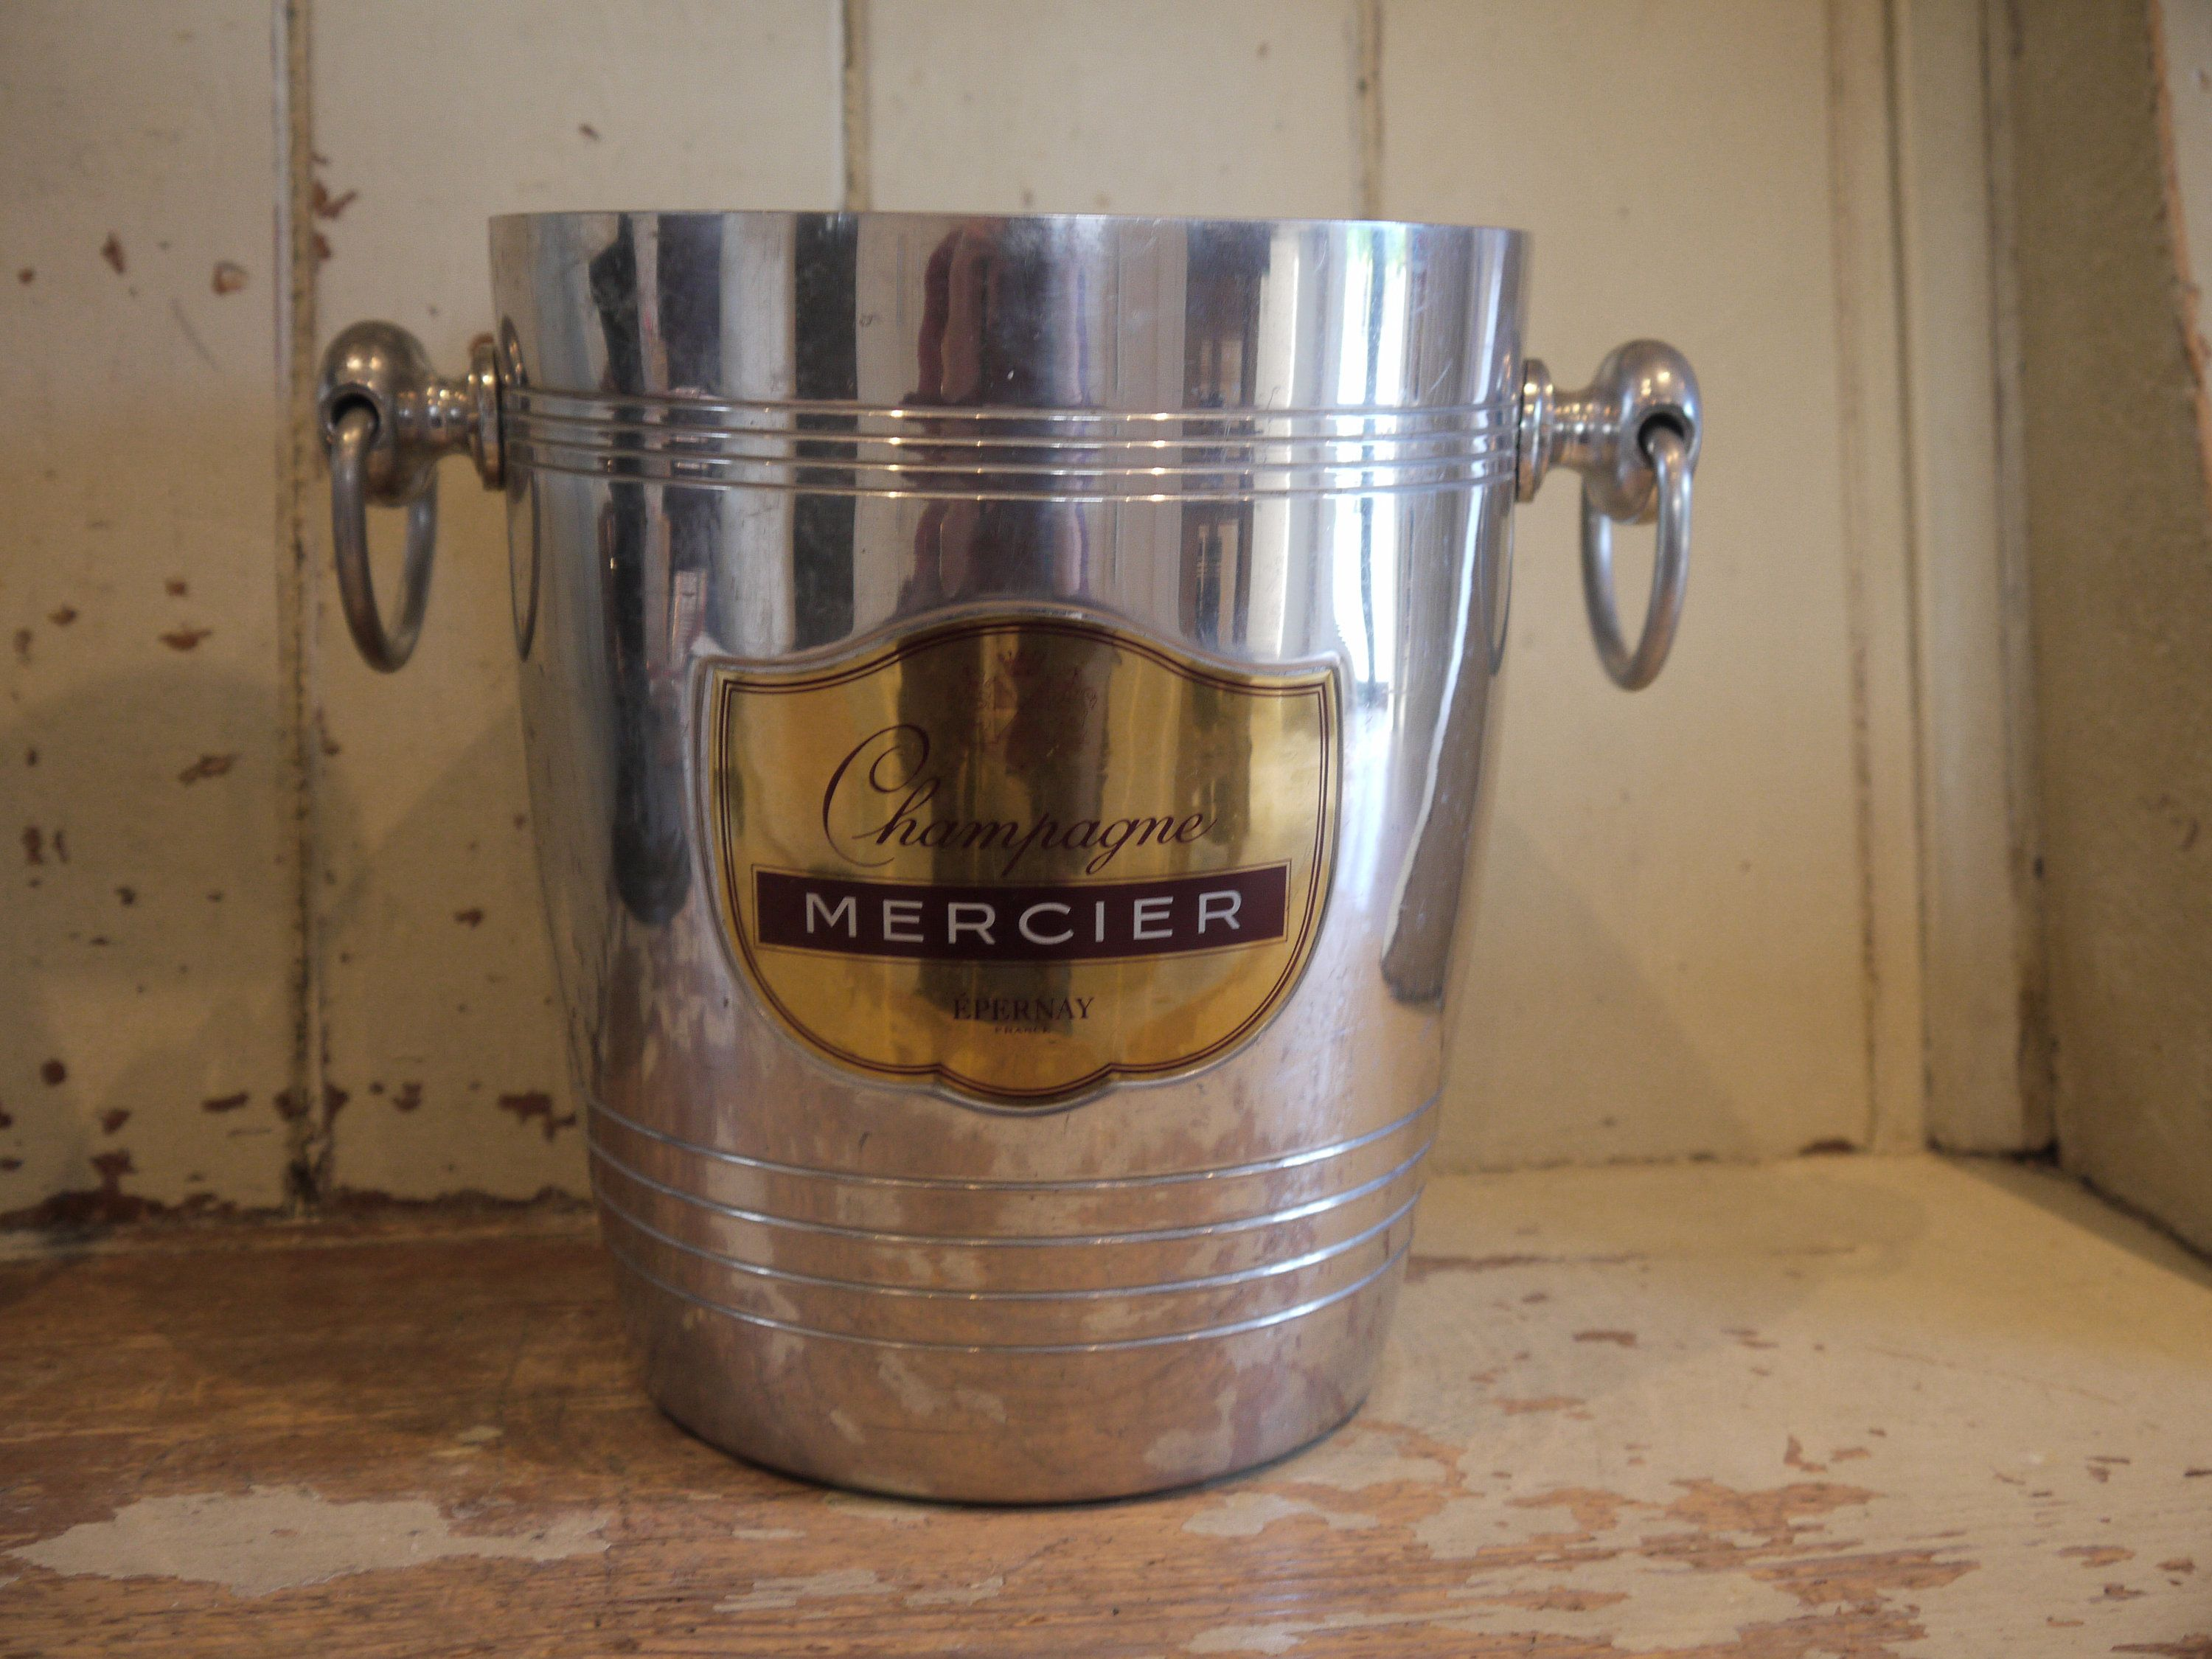 French Vintage Champagne Bucket Vintage Ice Bucket Vintage Champagne Bucket Wine Cooler Vintage Wine Cooler Mercier Champagne Vintage Champagne Champagne Brands Champagne Buckets